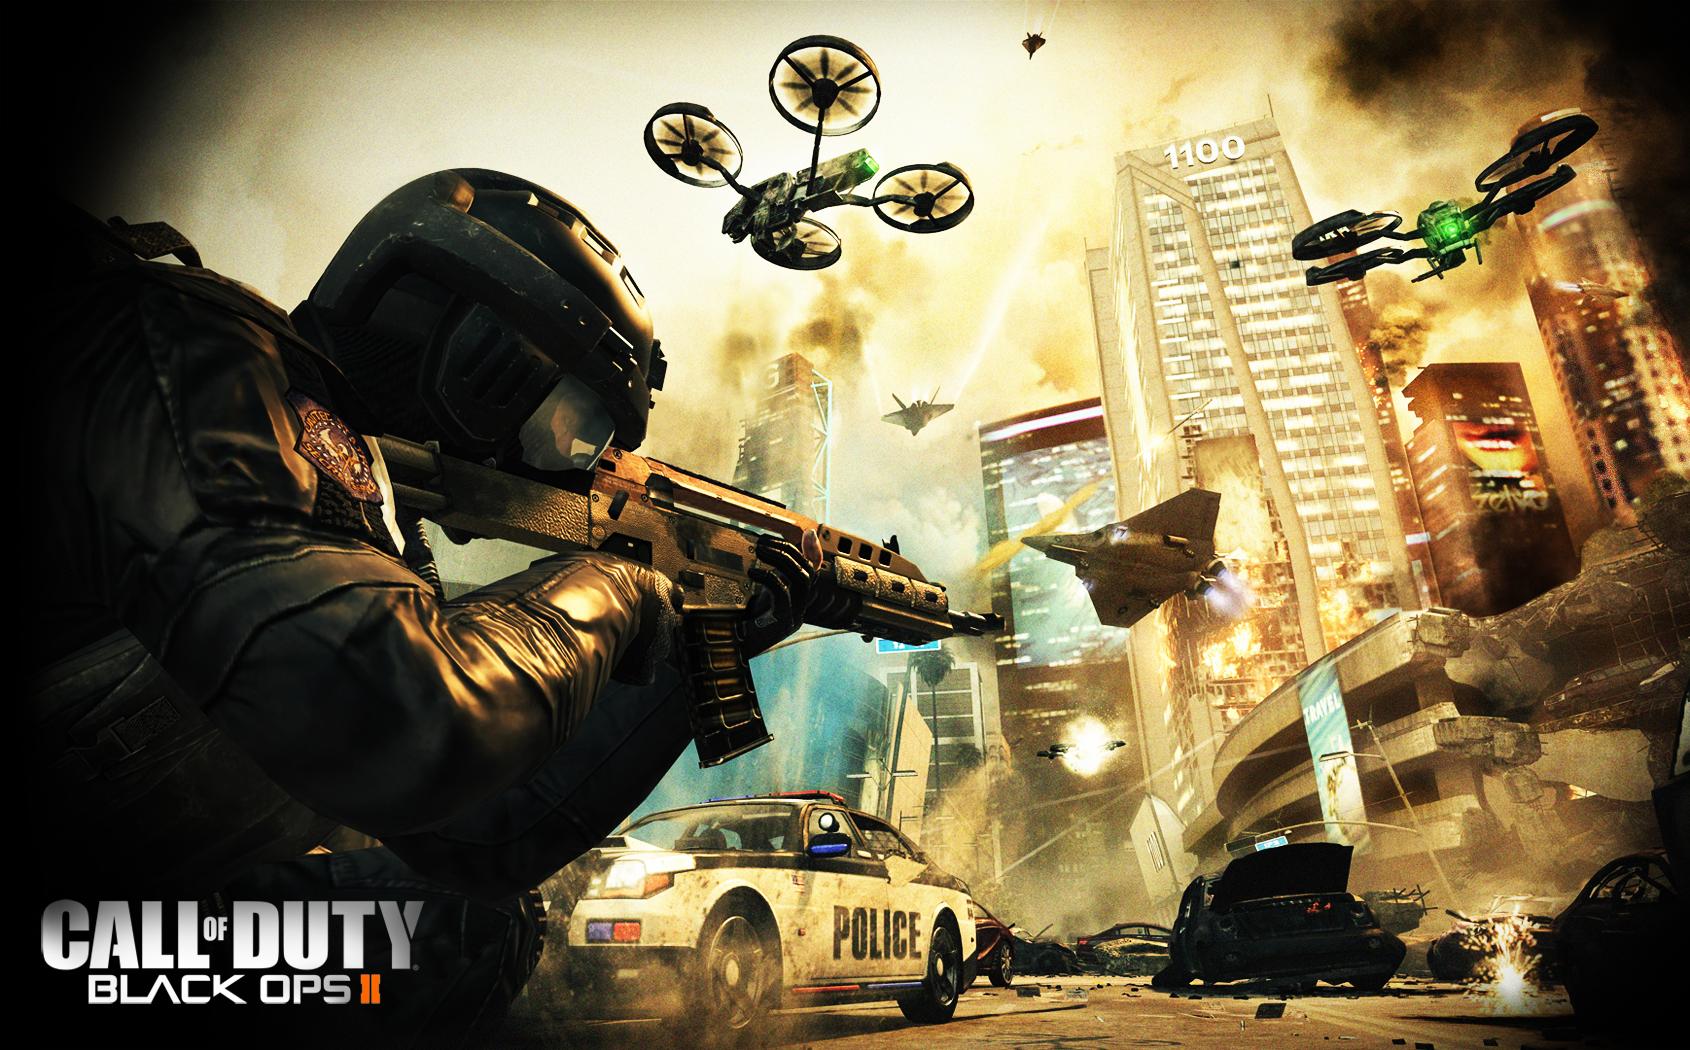 Call Of Duty Black Ops 2 Wallpaper 25